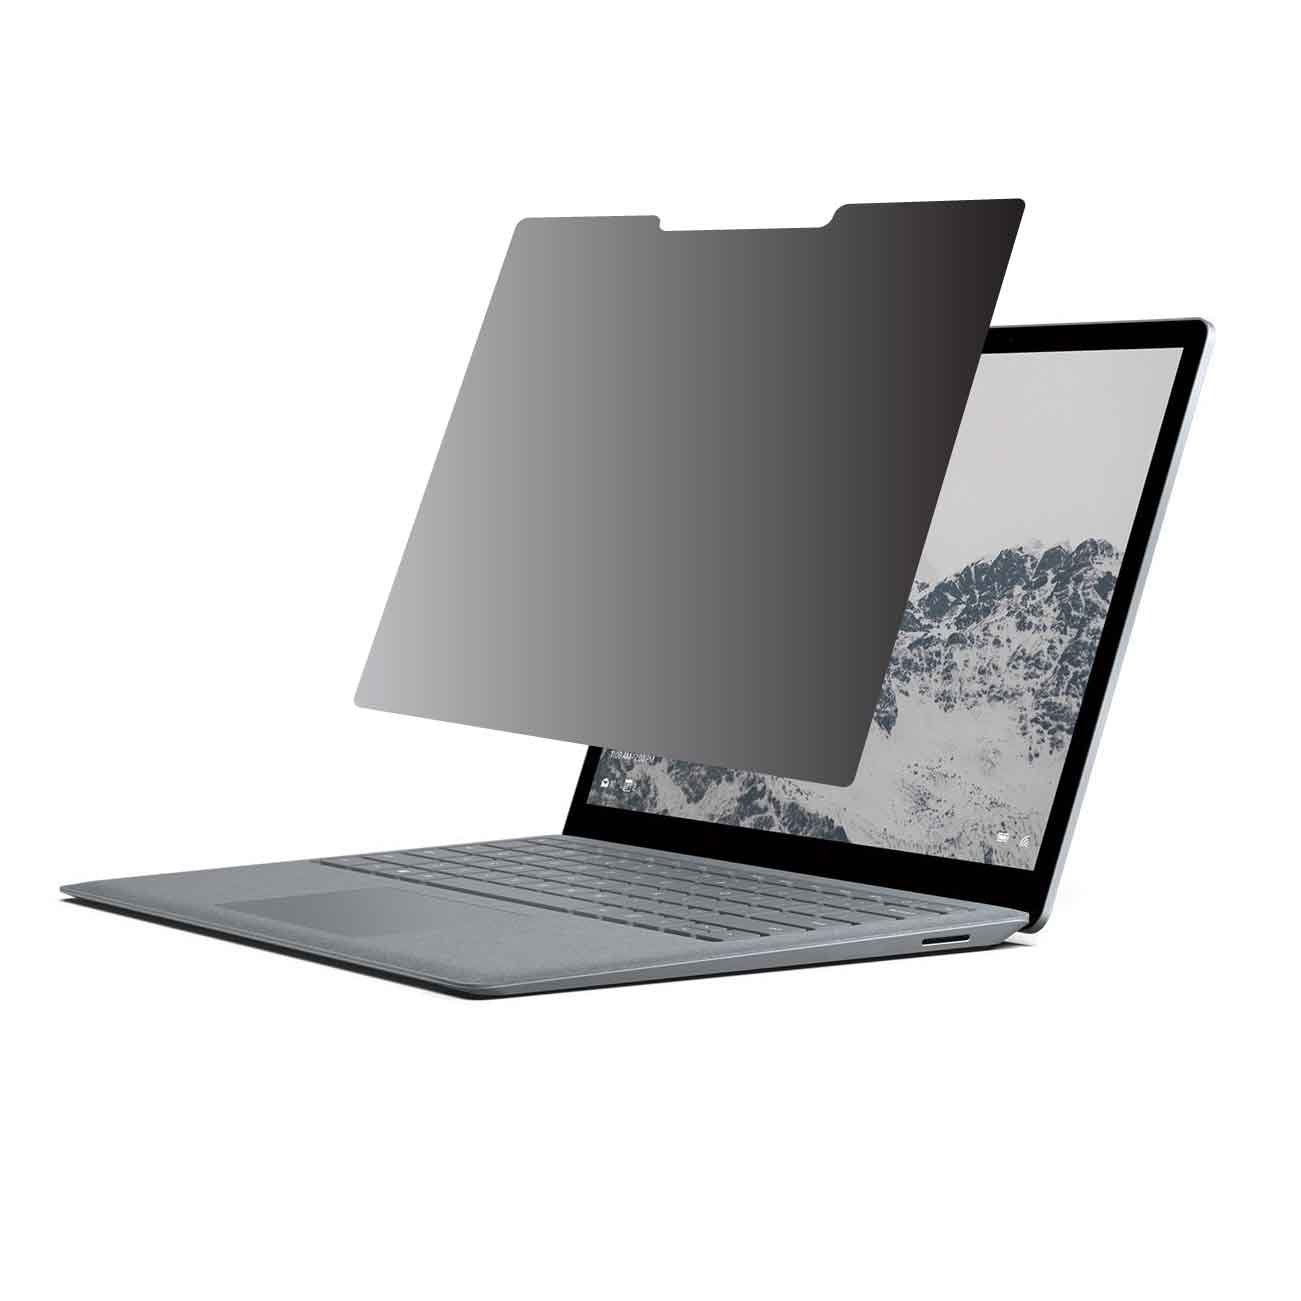 Privacy Screen Protector (360 Degree Privacy Protection) for Microsoft Surface Laptop (not Compatible with Surface Book) by EZ-Pro Screen Protector